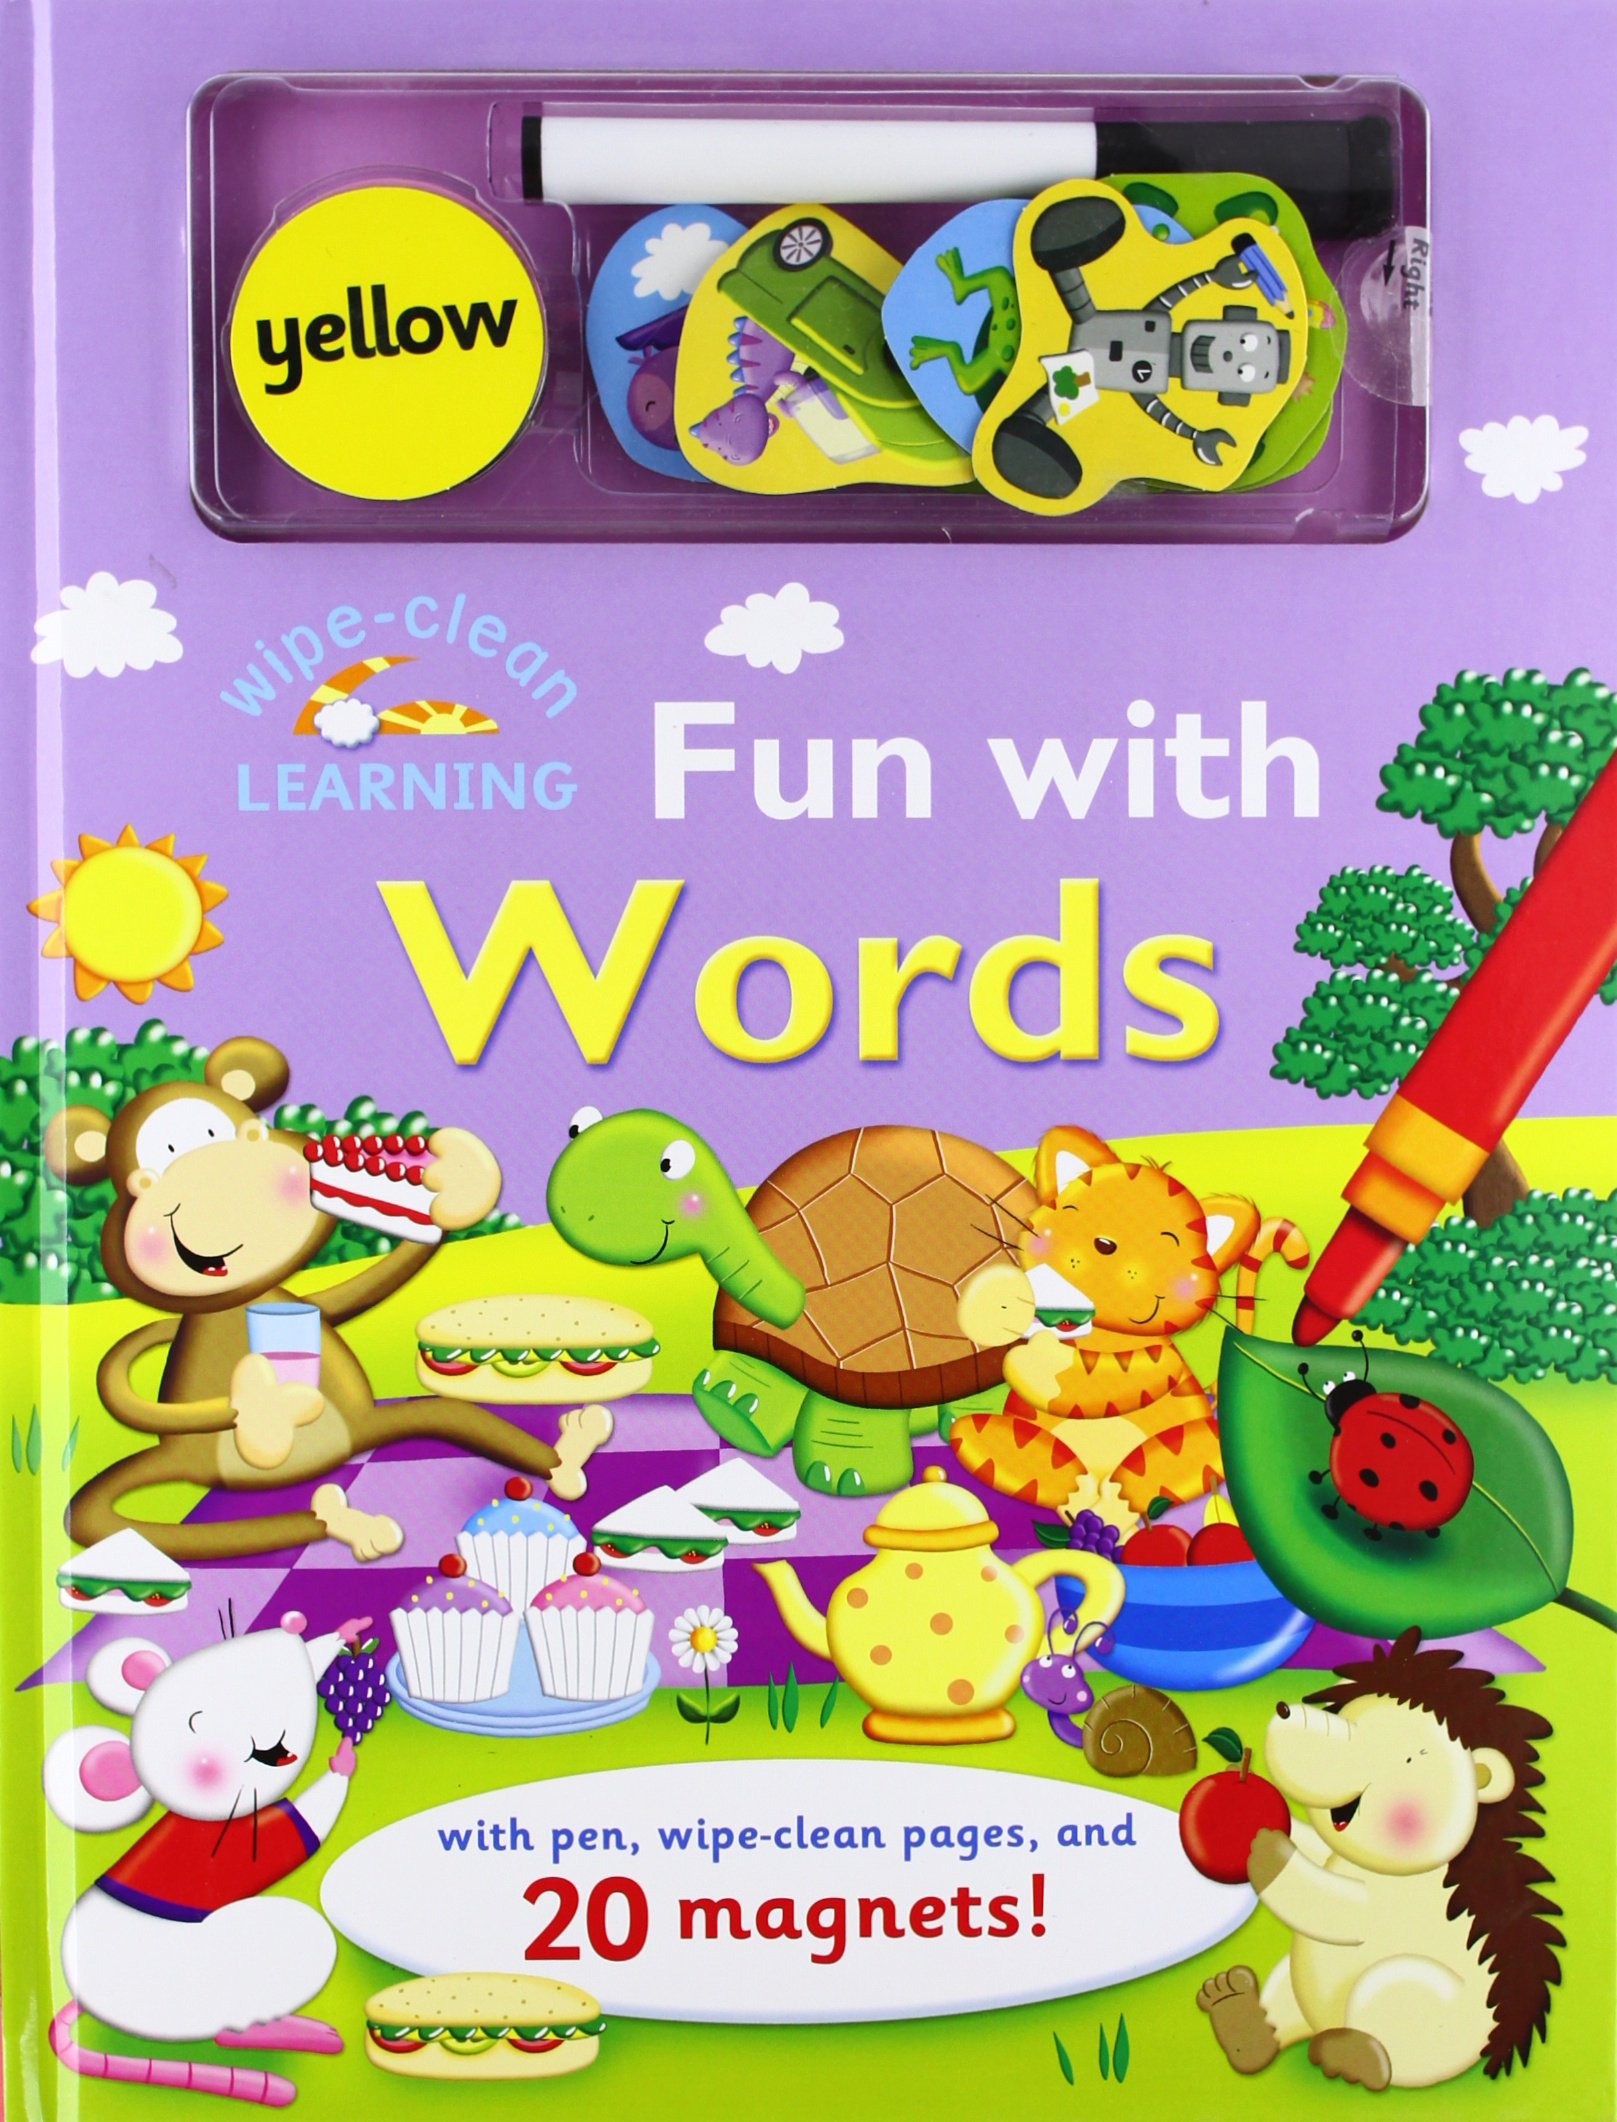 Wipe-Clean: Fun with Words: With Pen, Wipe-Clean Pages, and 20 Magnets! (Wipe-Clean Learning Books) ePub fb2 book